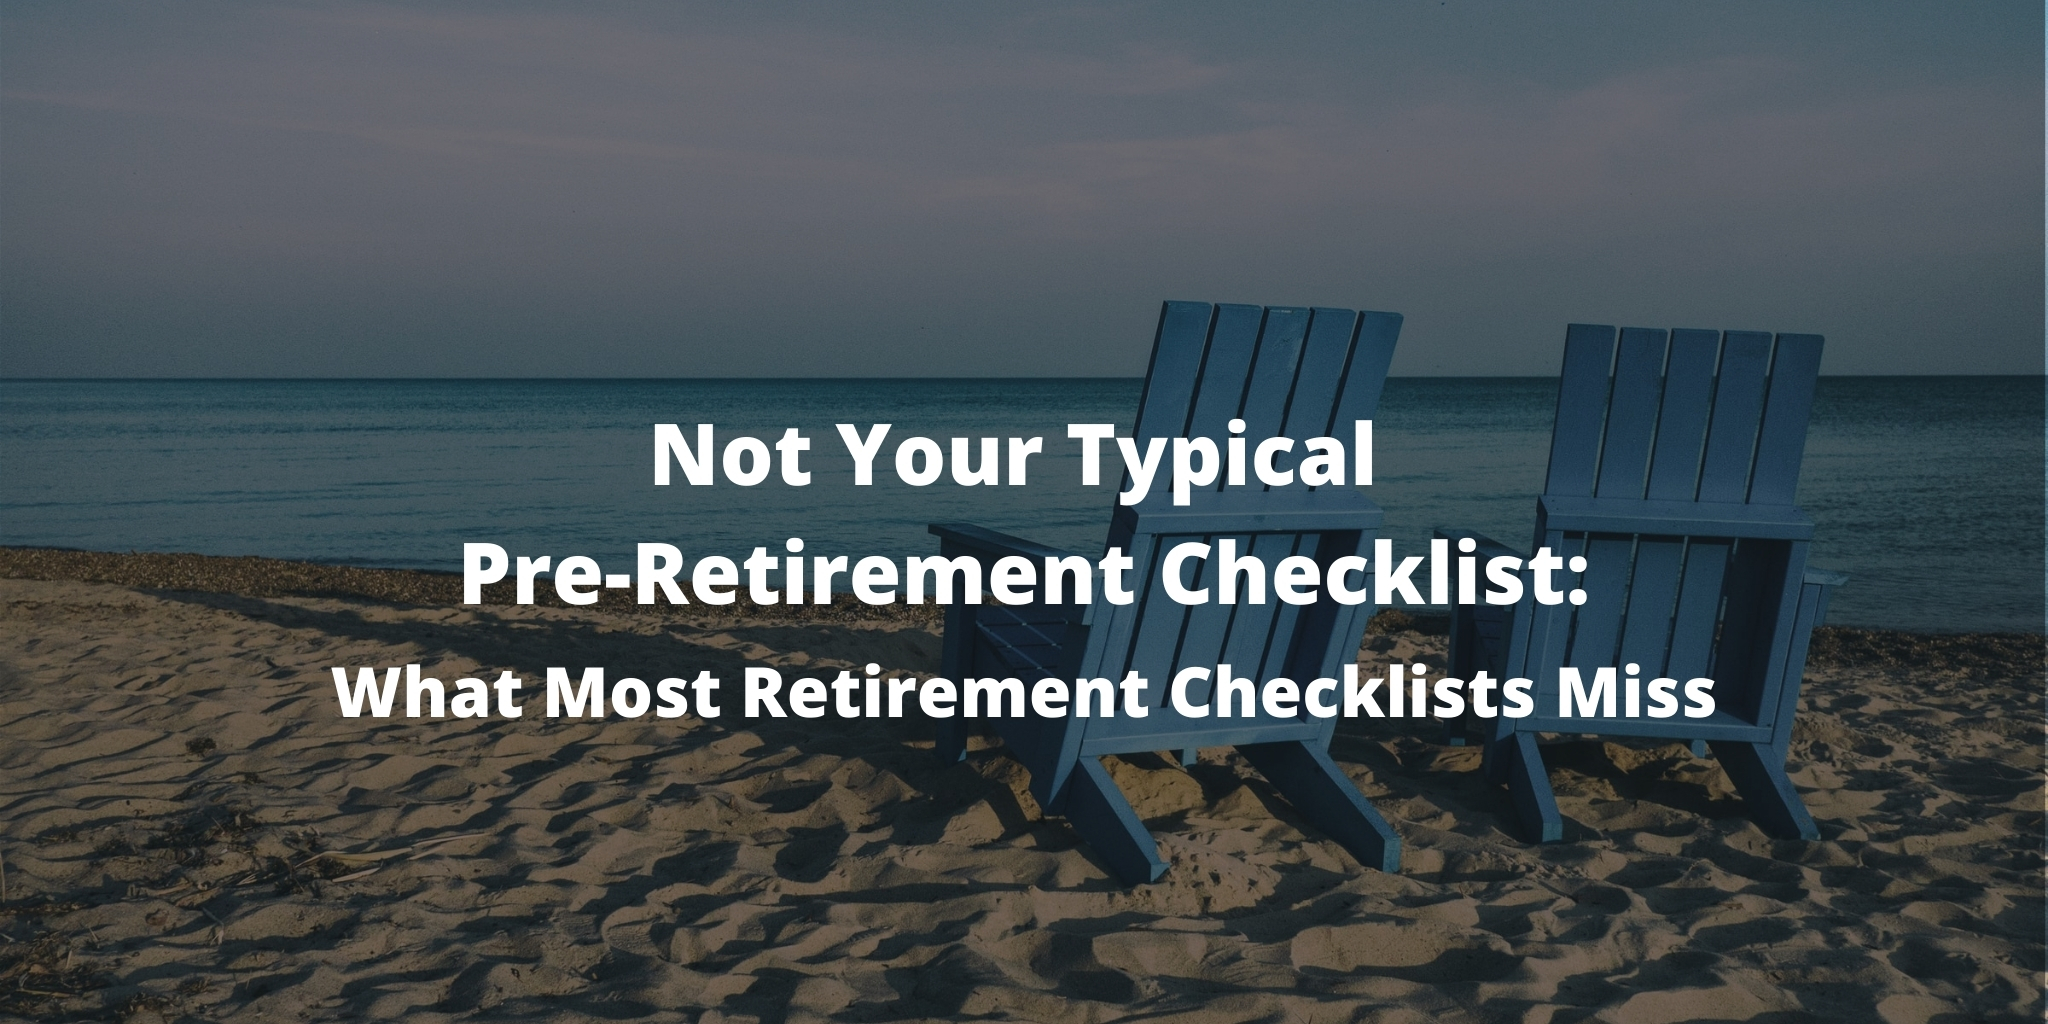 Not Your Typical Pre-Retirement Checklist